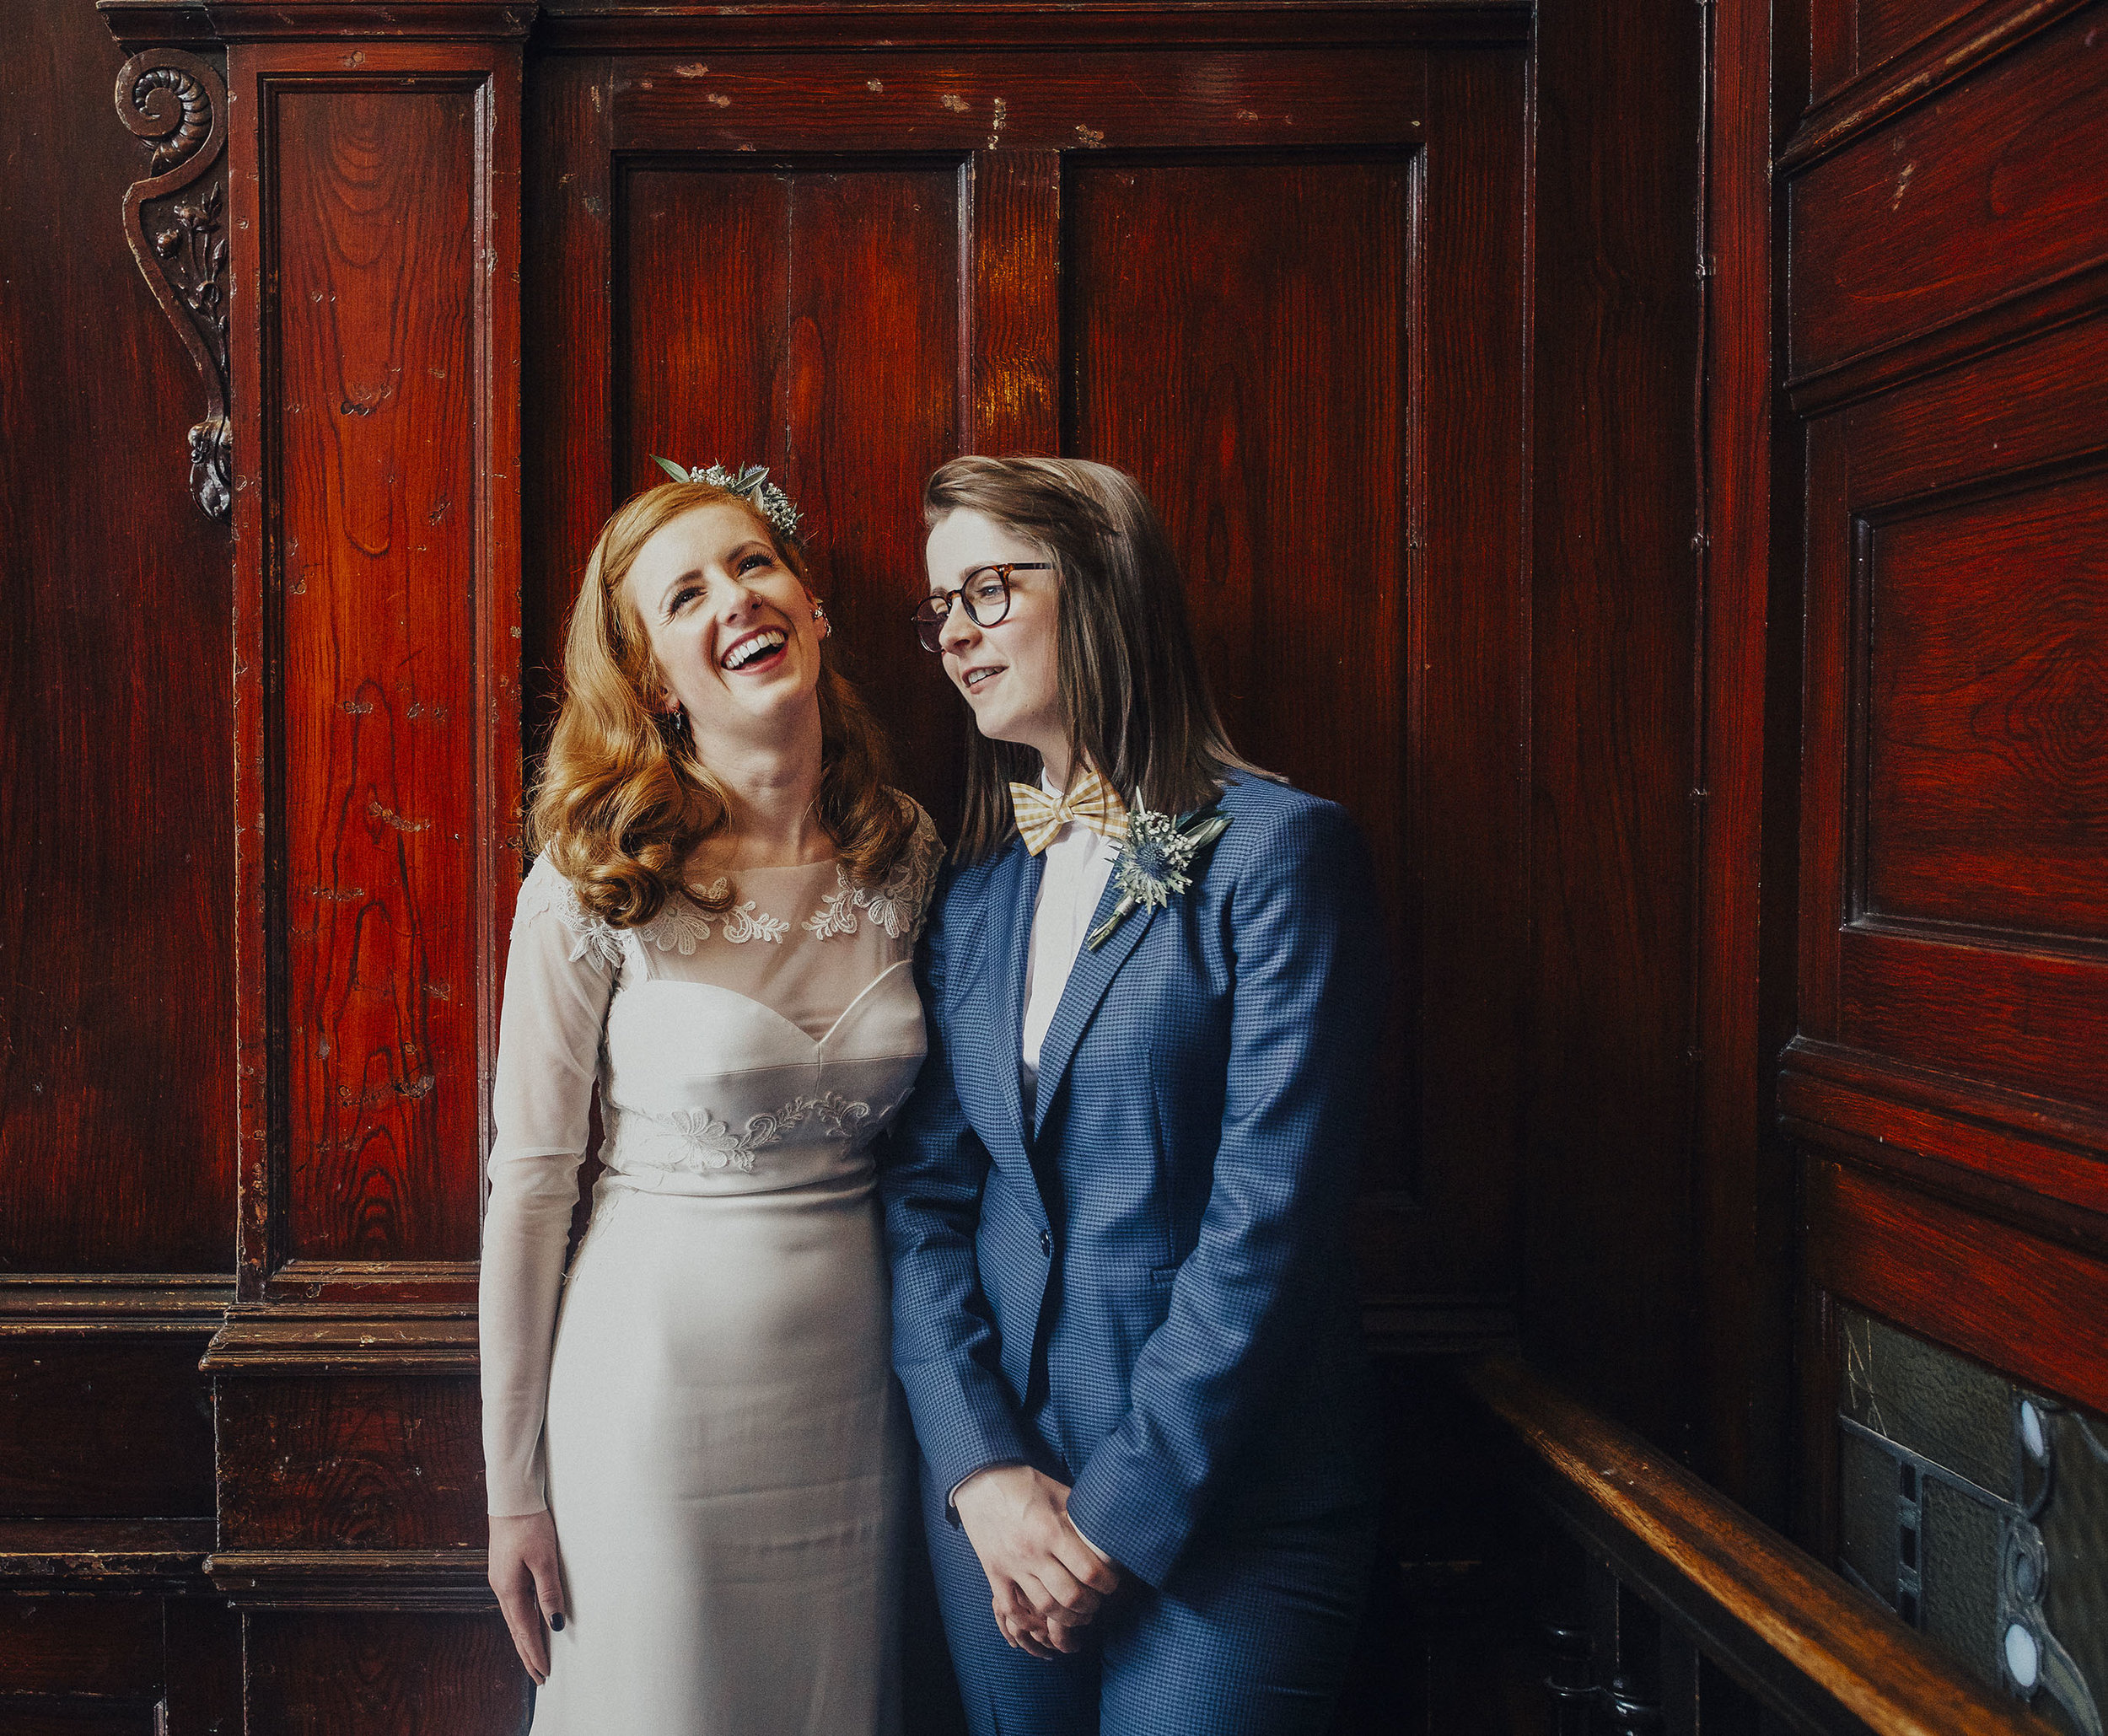 SAME_SEX_WEDDING_PHOTOGRAPHER_SLOANS_GLASGOW_PJ_PHILLIPS_PHOTOGRAPHY_65.jpg